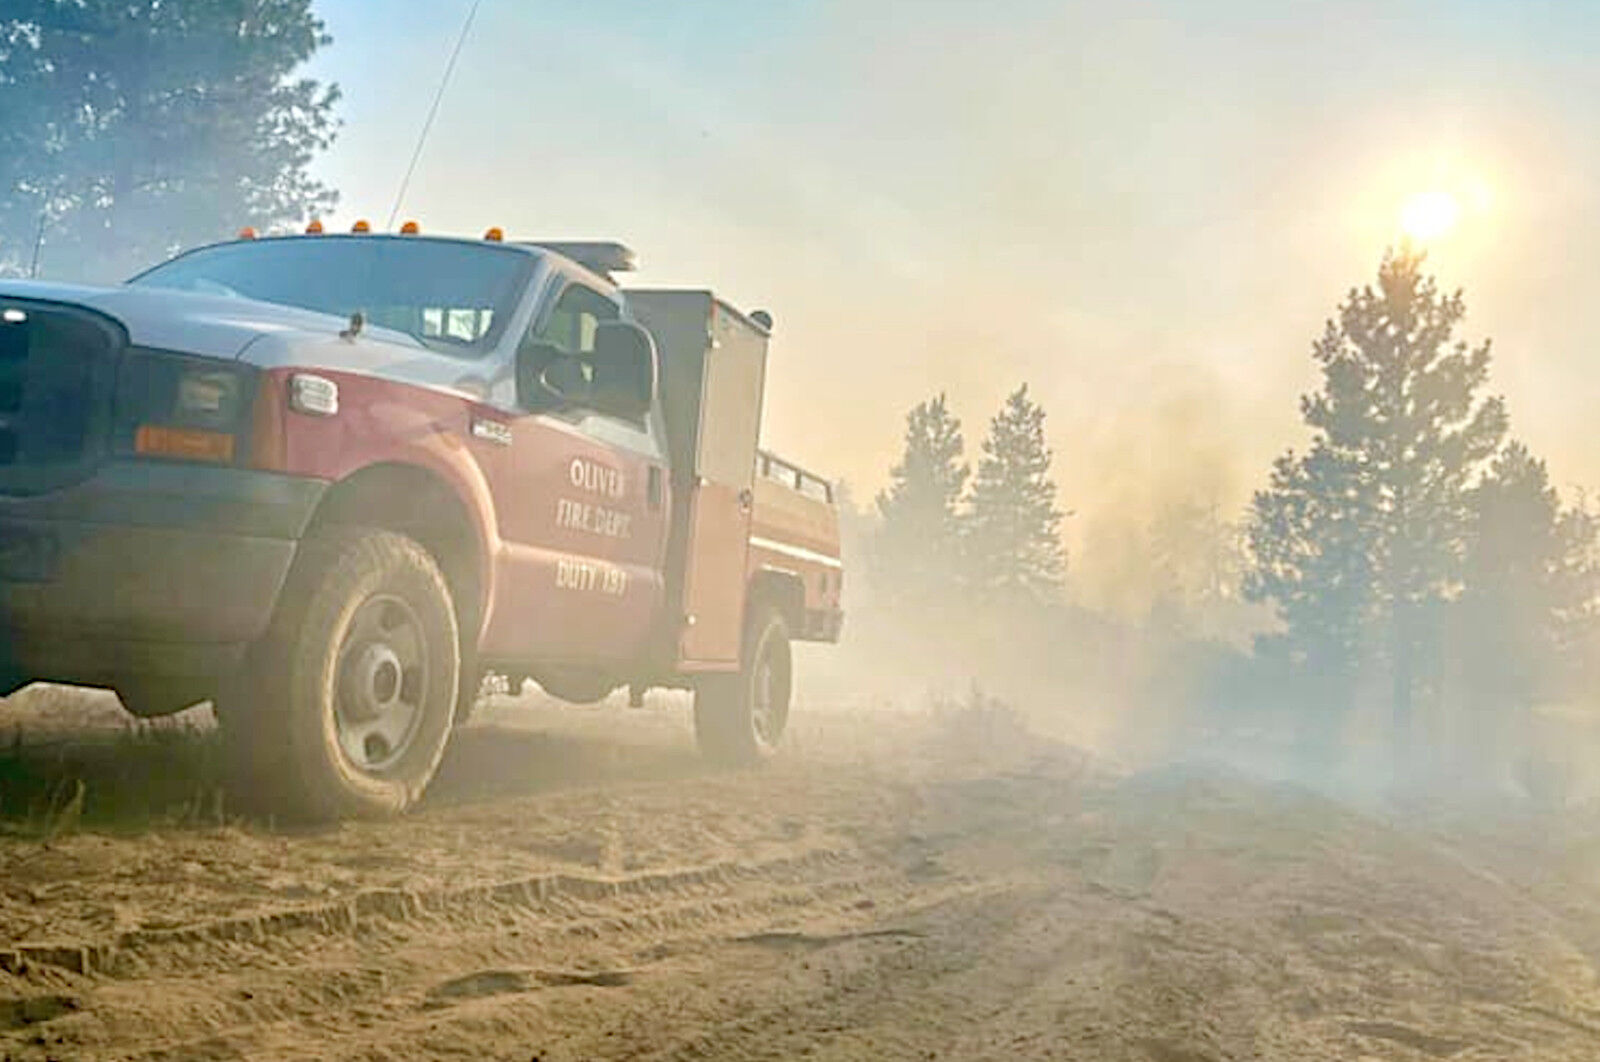 Heat warning expected to challenge firefighters